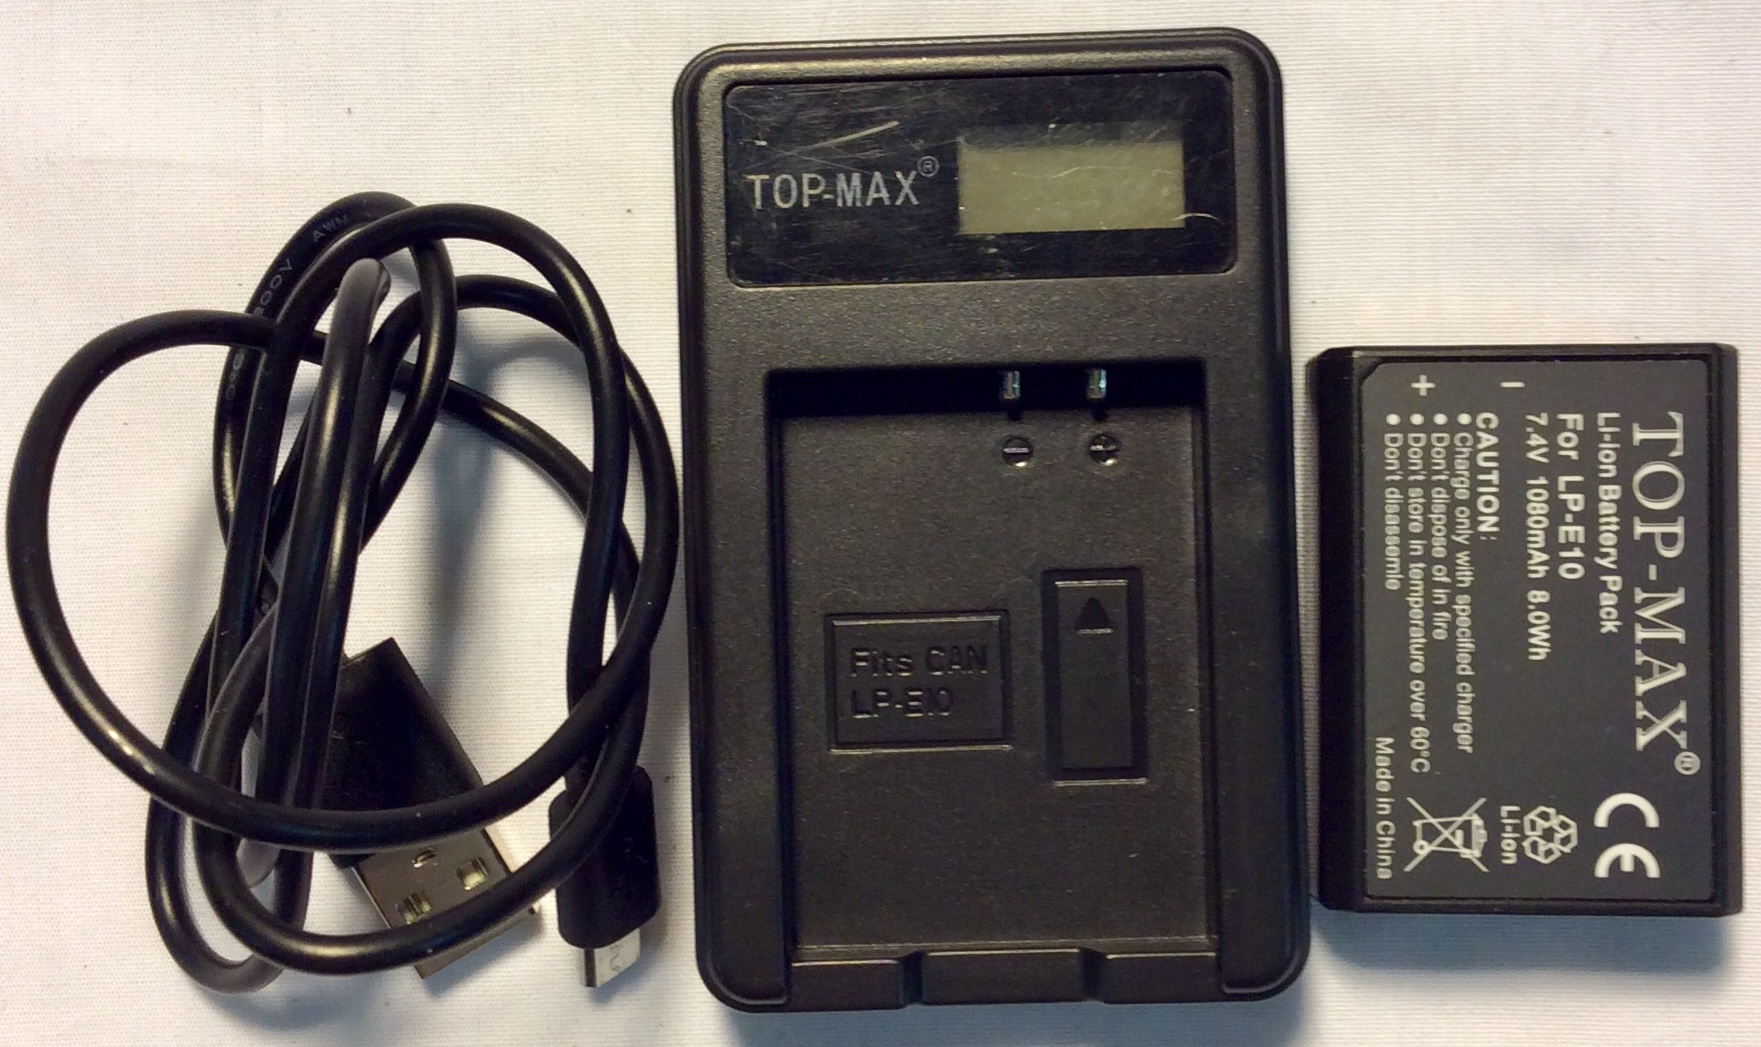 Top-Max batter charger, USB outlet